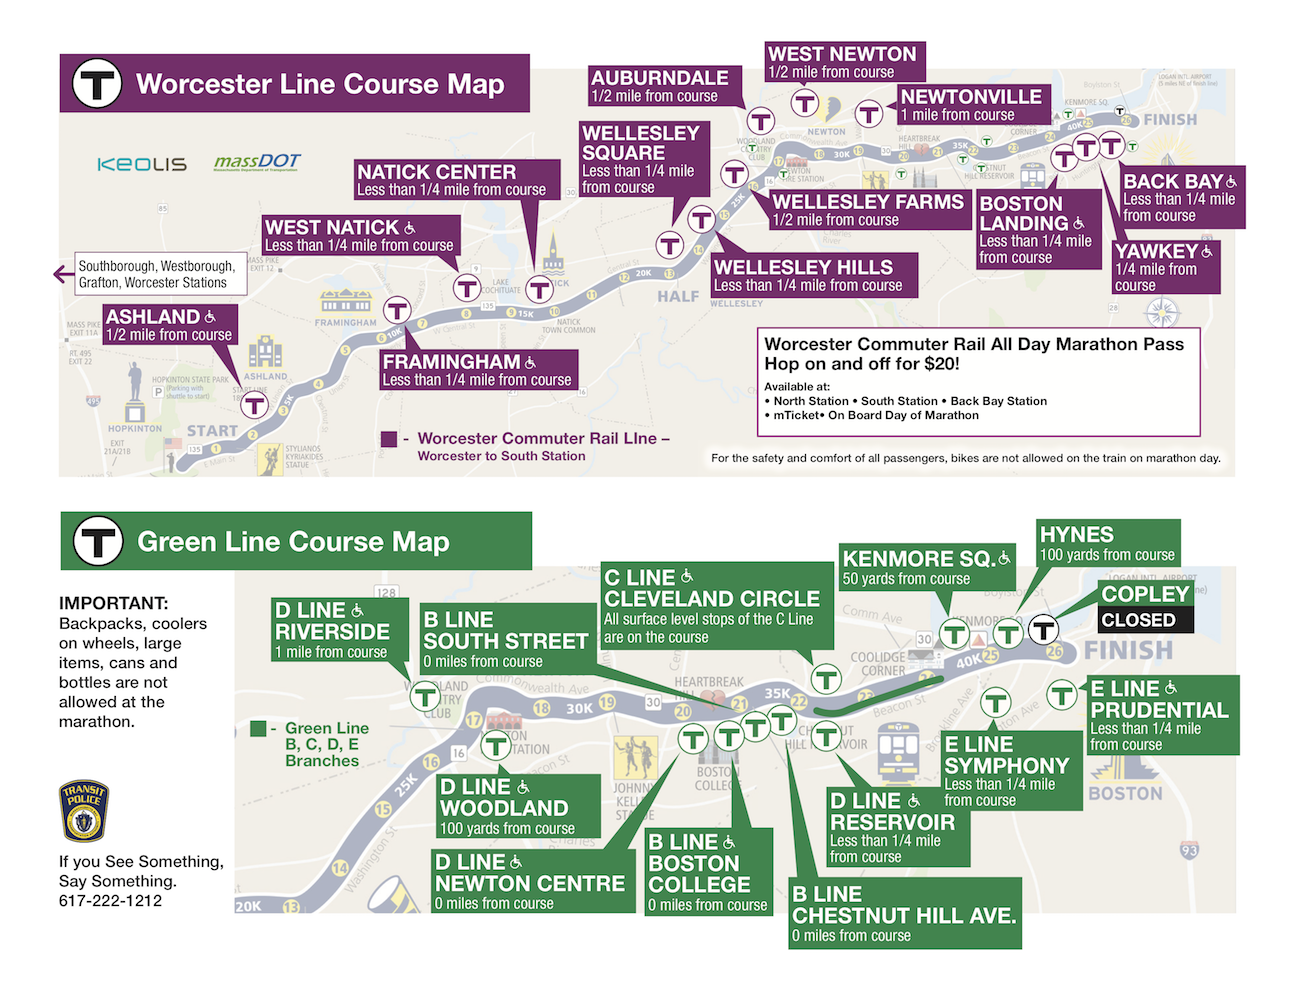 Check out the MBTA/Keolis Marathon viewing map to stake out your stop